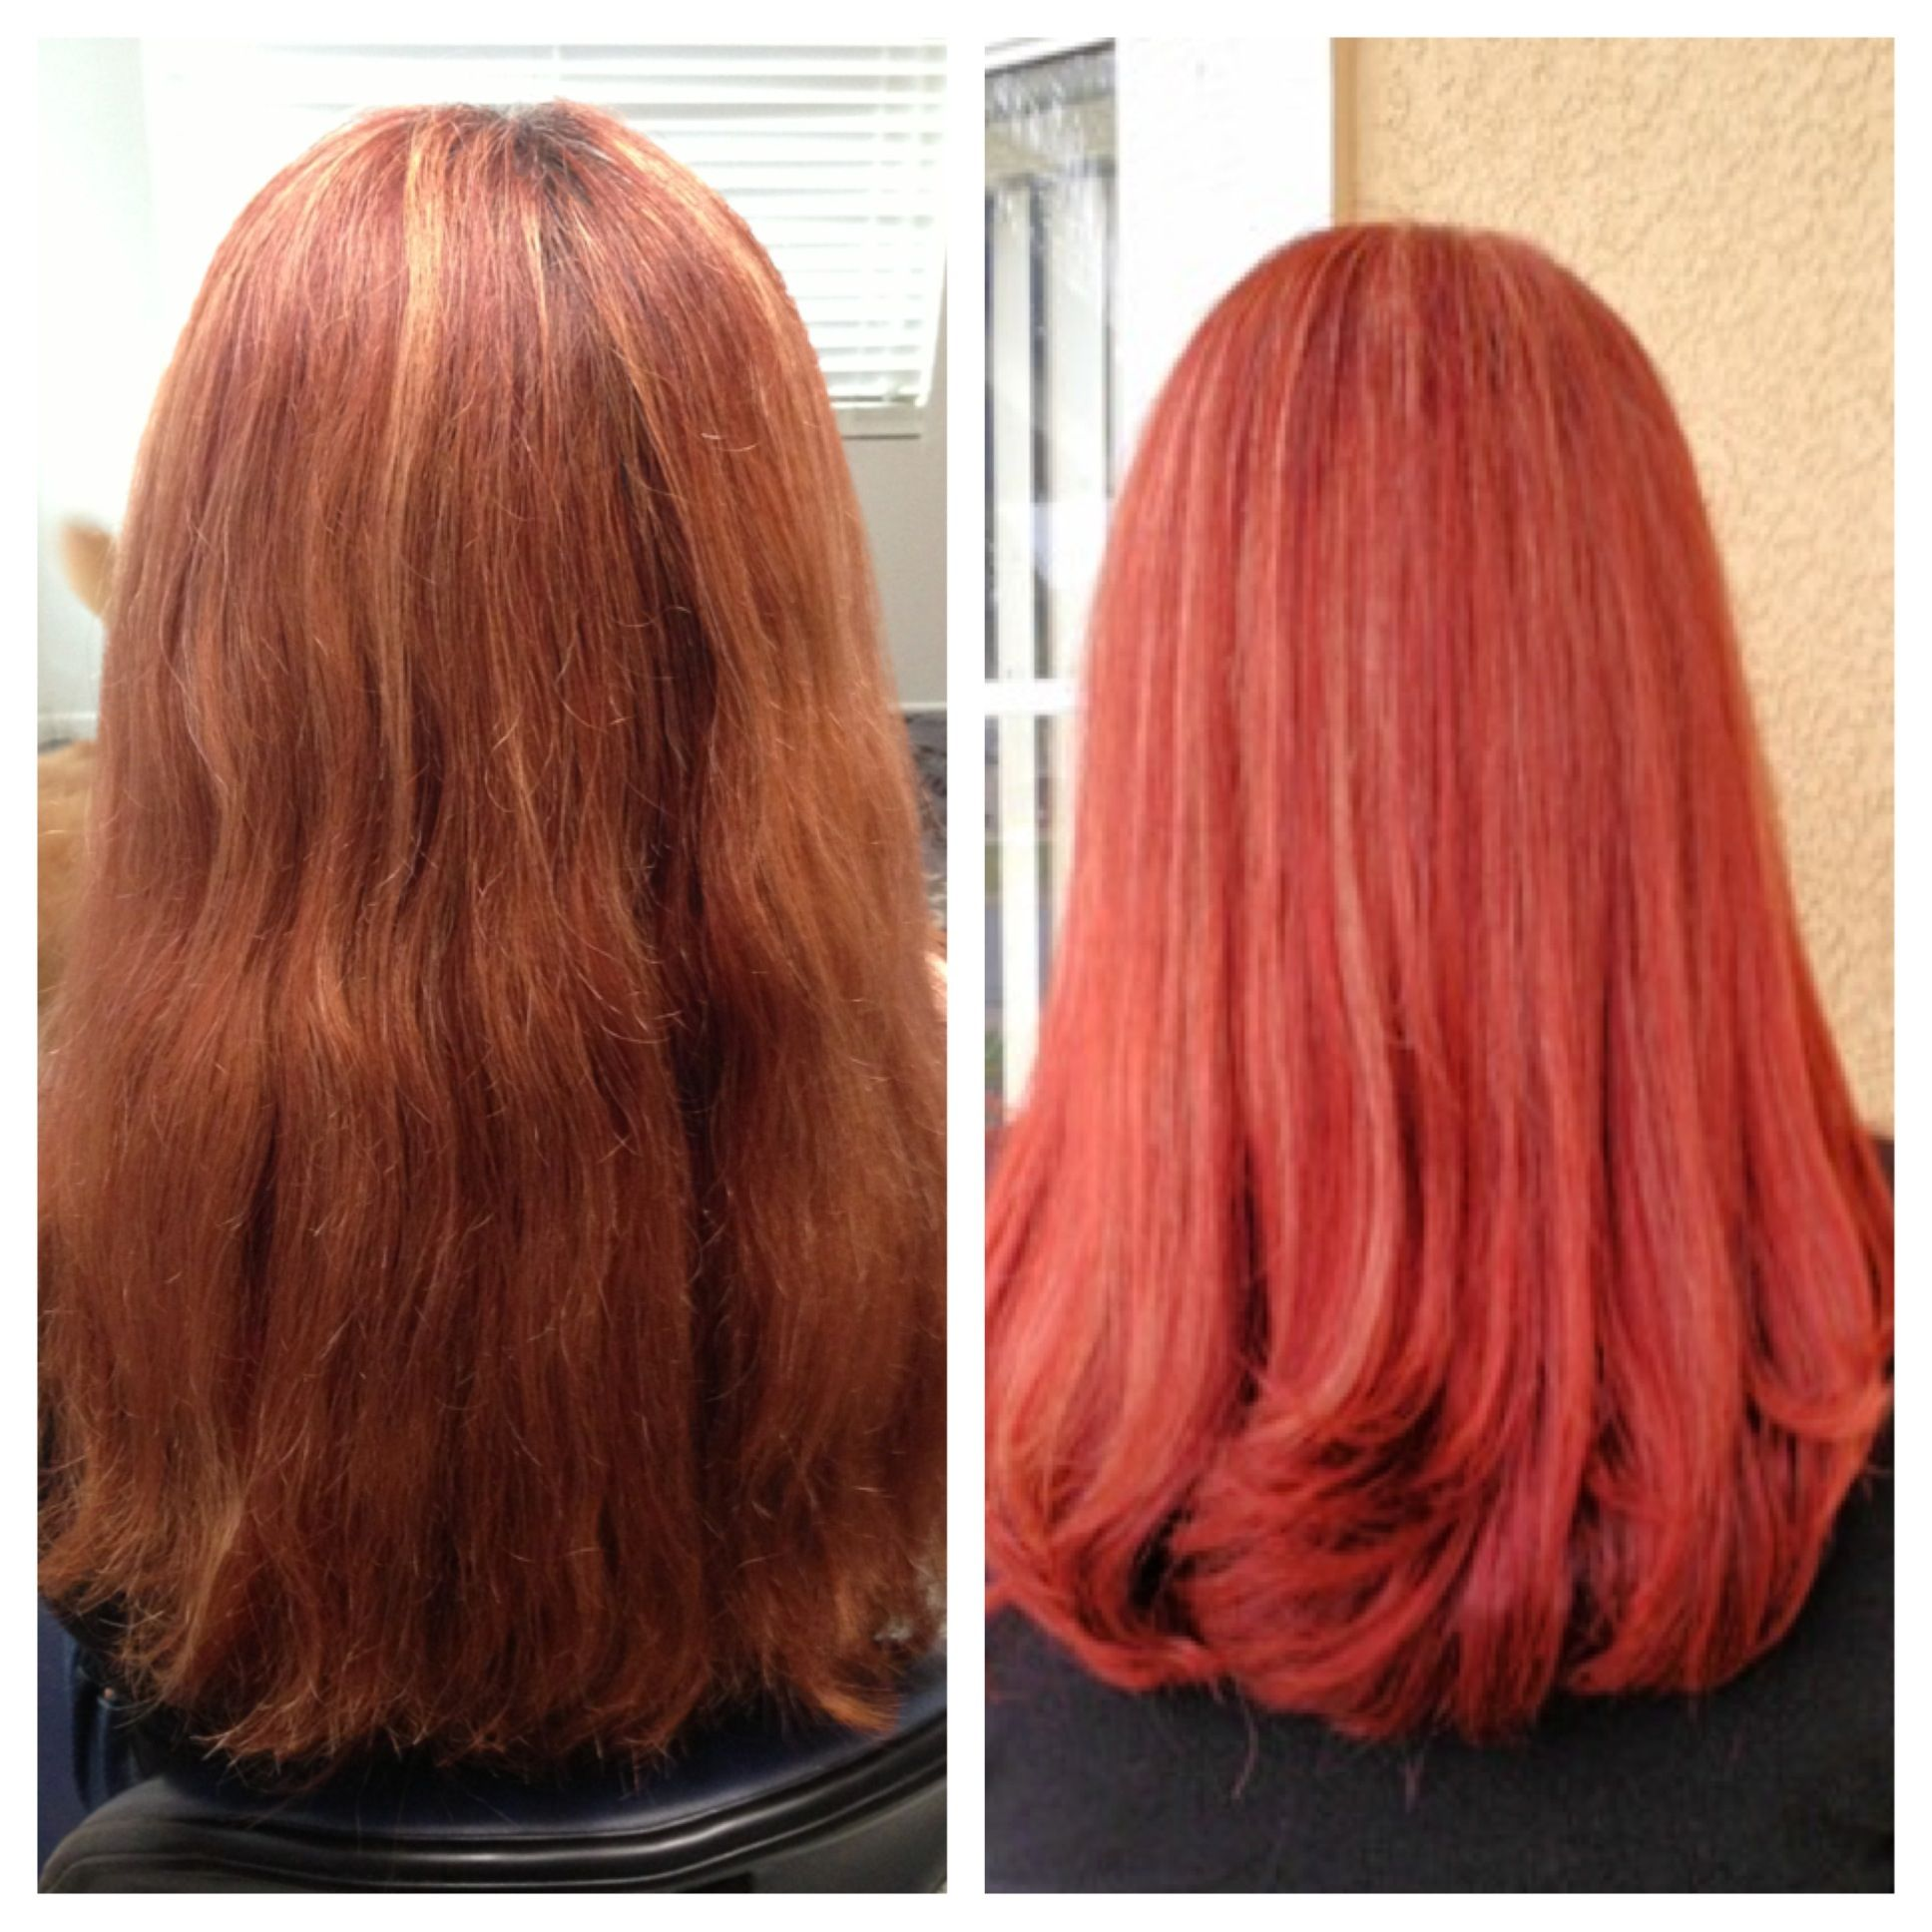 Pin By Carrie Gouvion On Hair By Carrie Gouvion Matrix Hair Color Hair Inspiration Color Matrix Hair Color Chart